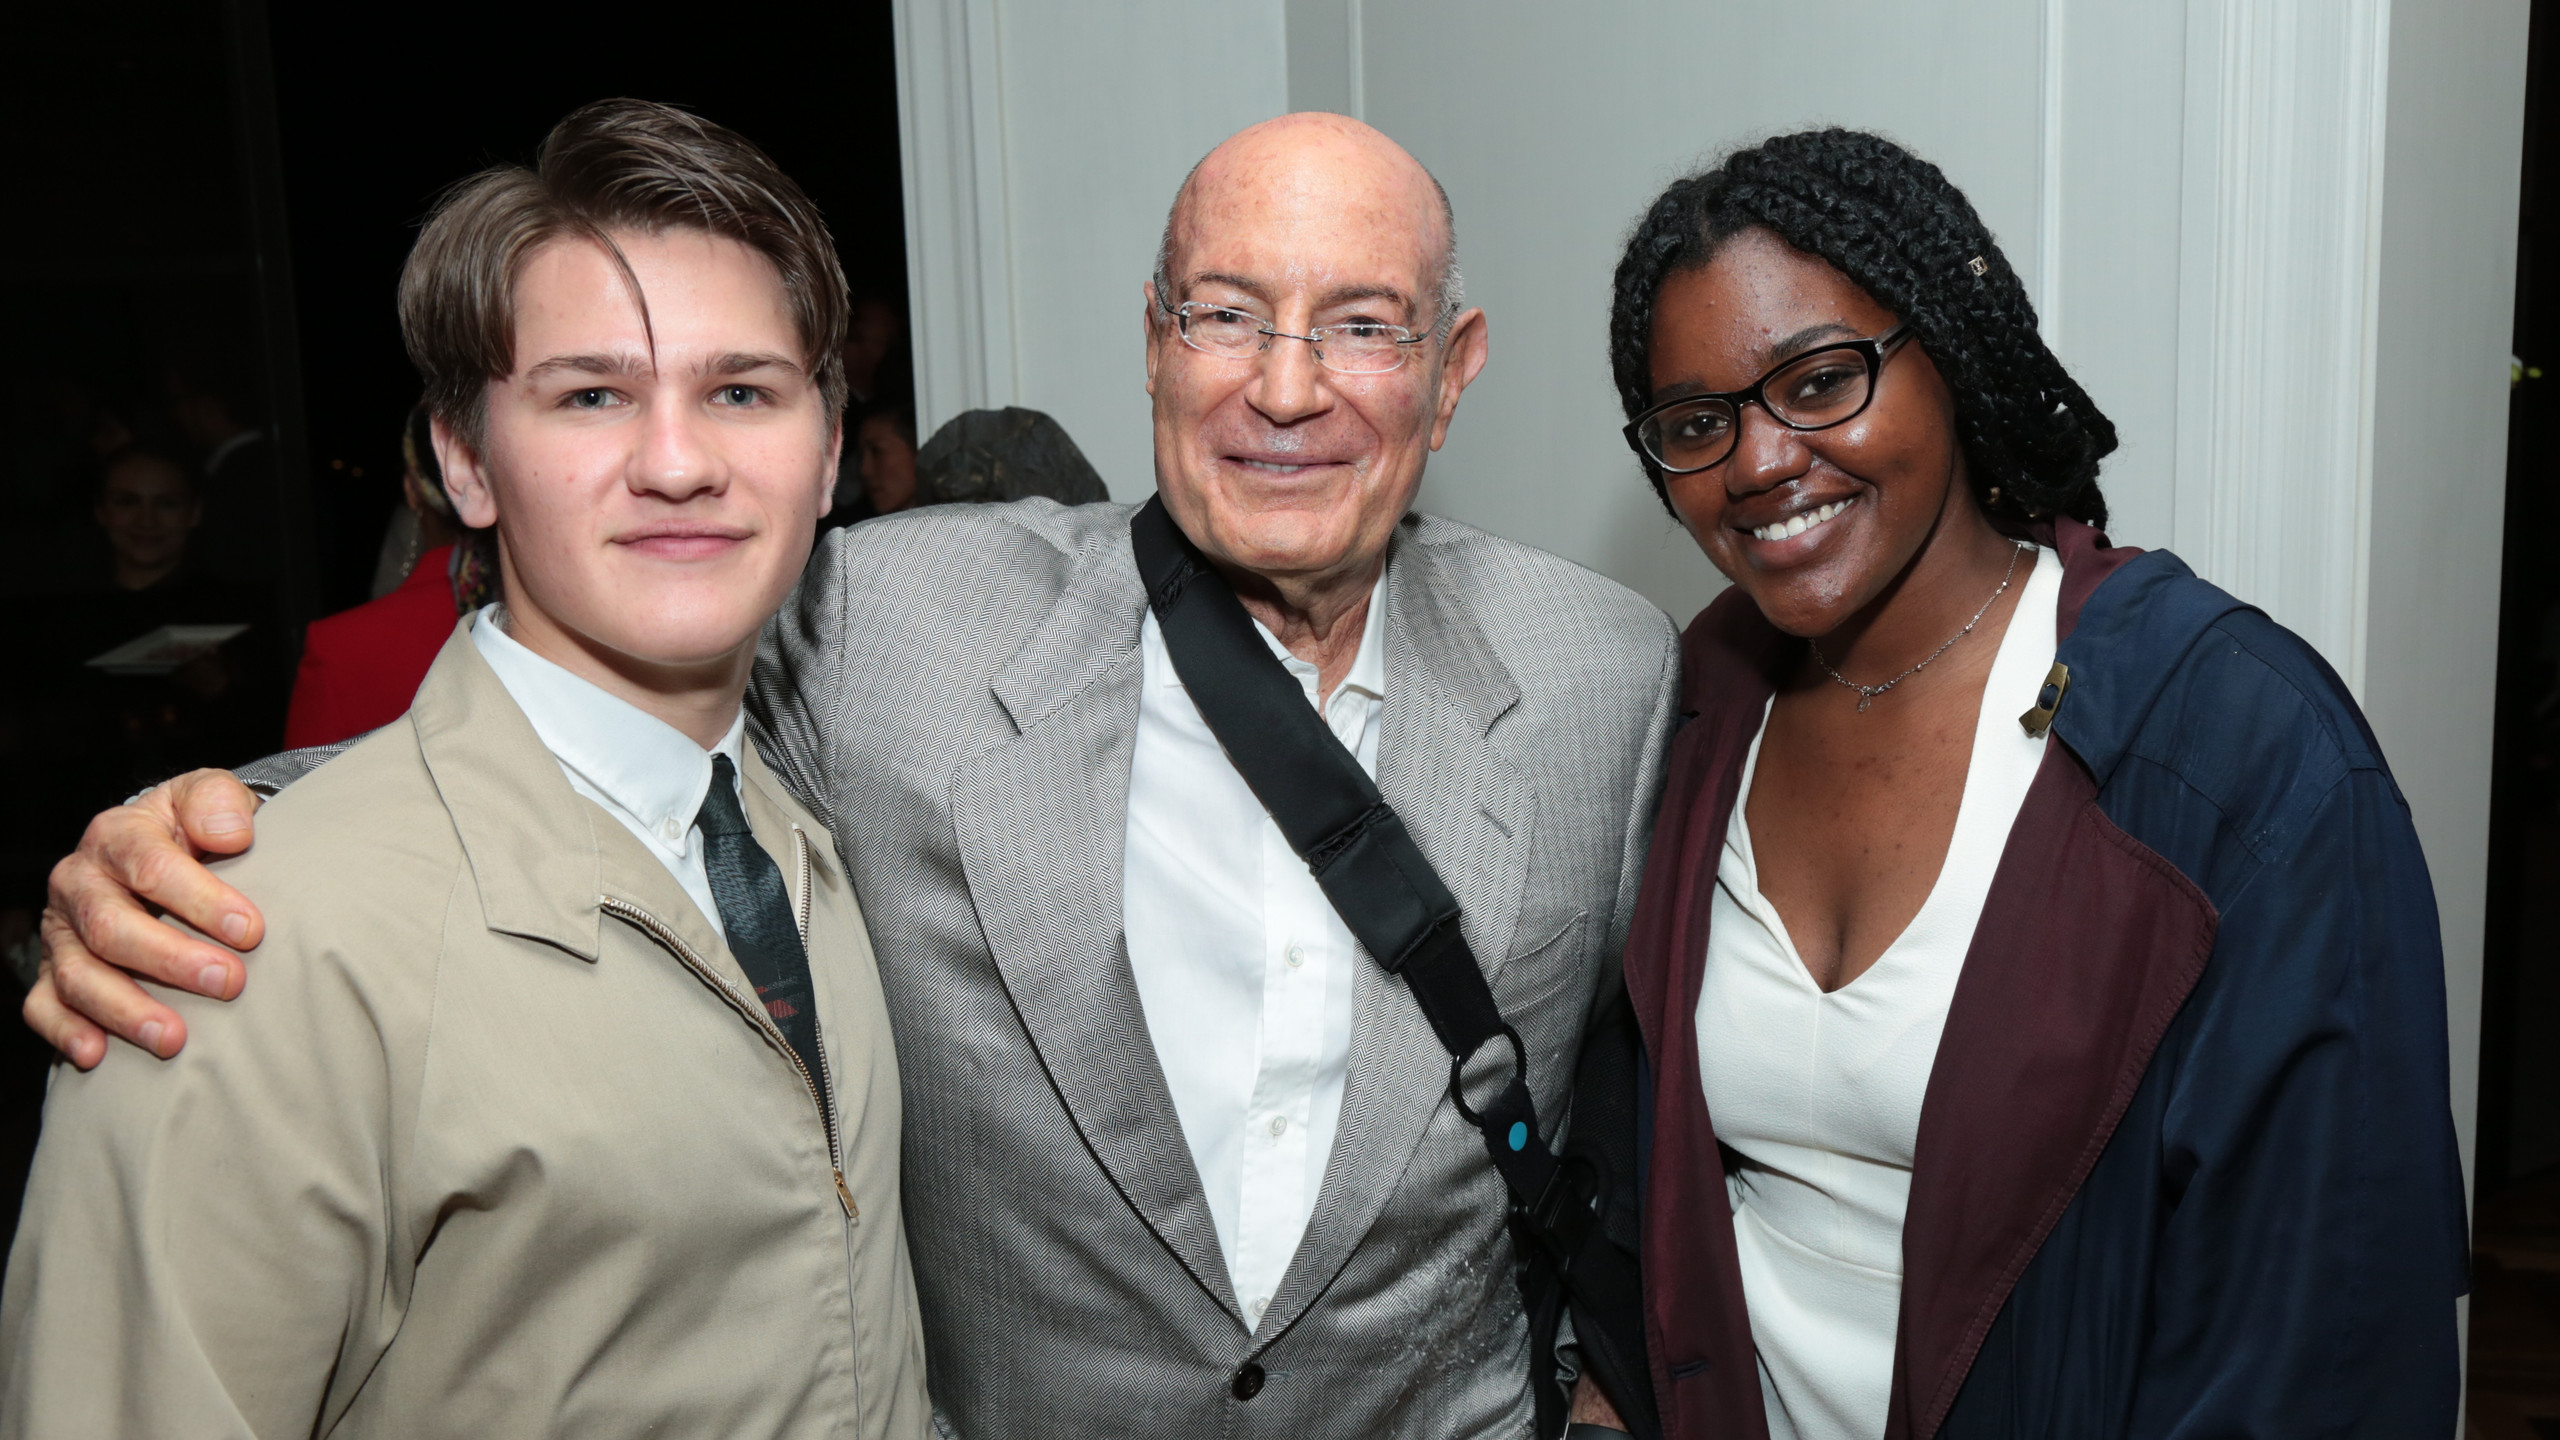 Niko Baur, Arnon Milchan, Joyous Herron   (Photo: Alex J. Berliner / ABImages )